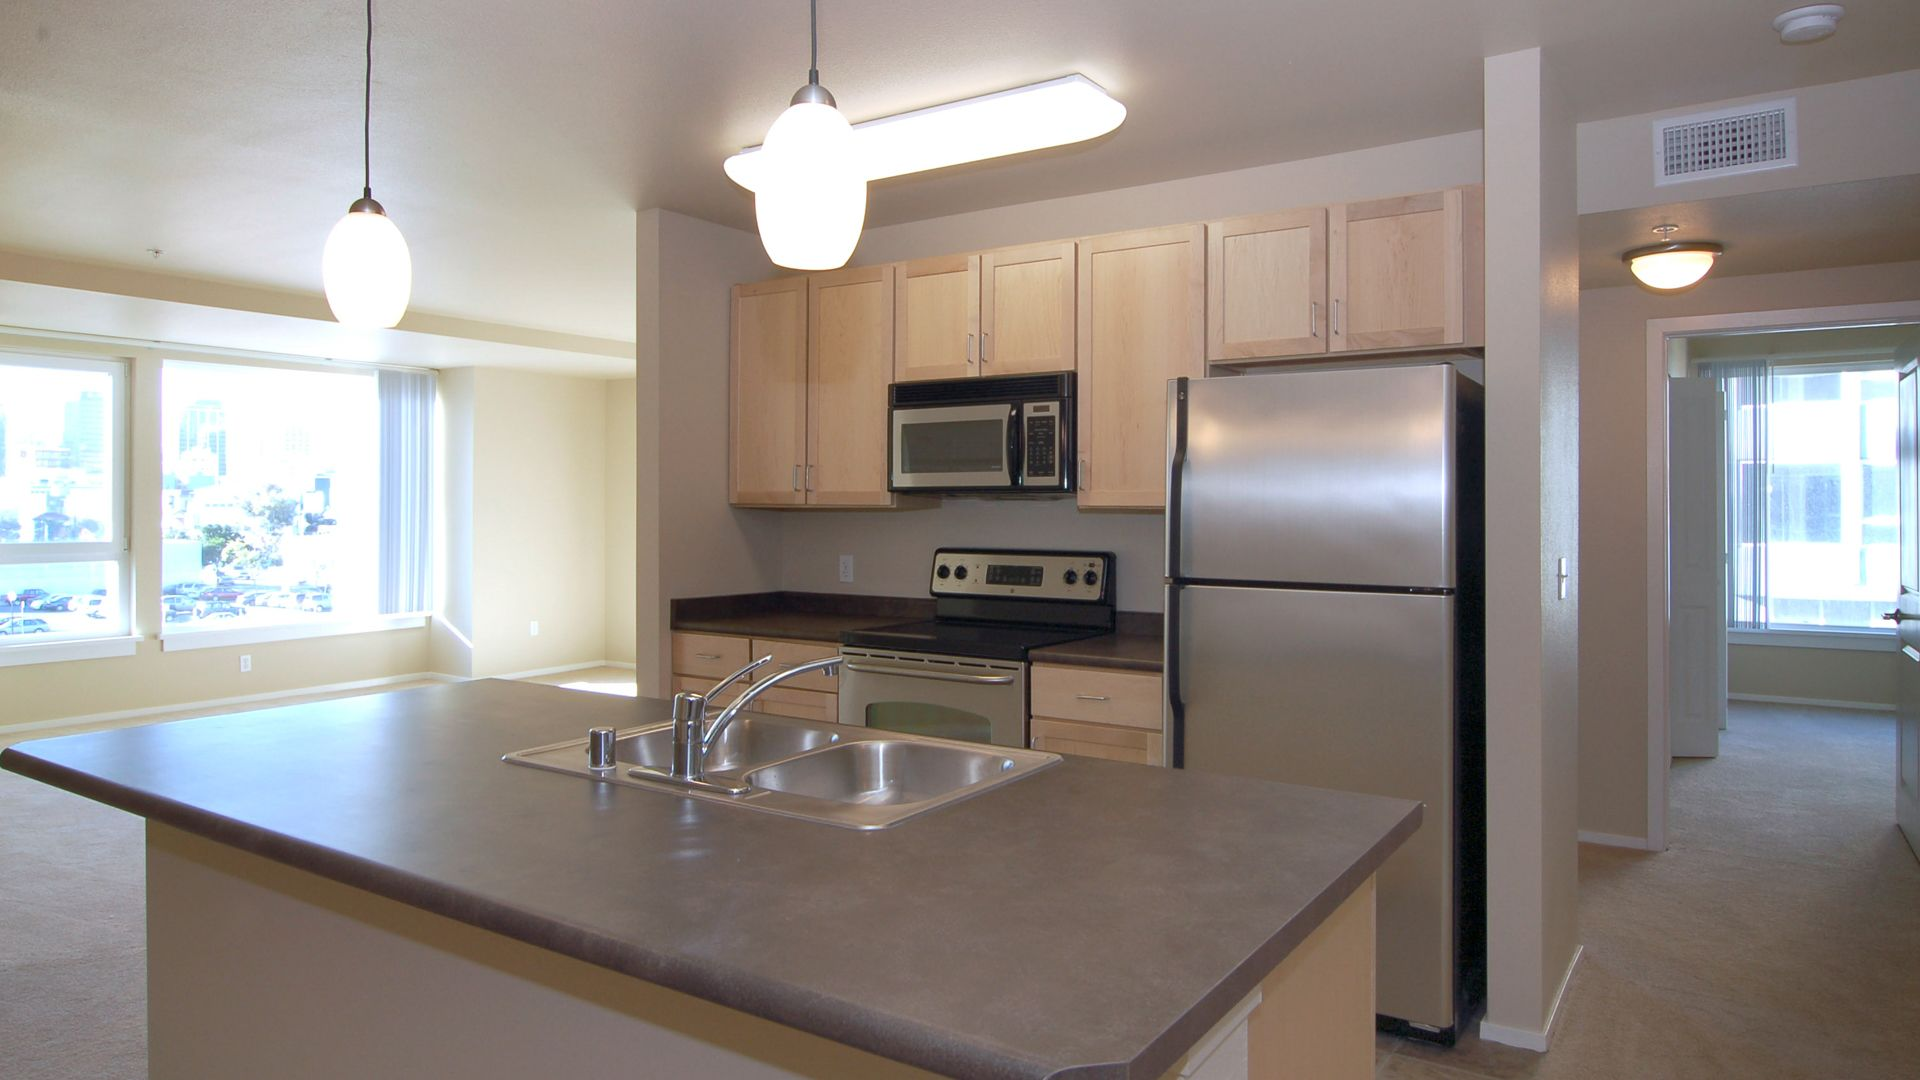 Market Street Village Apartments - Kitchen